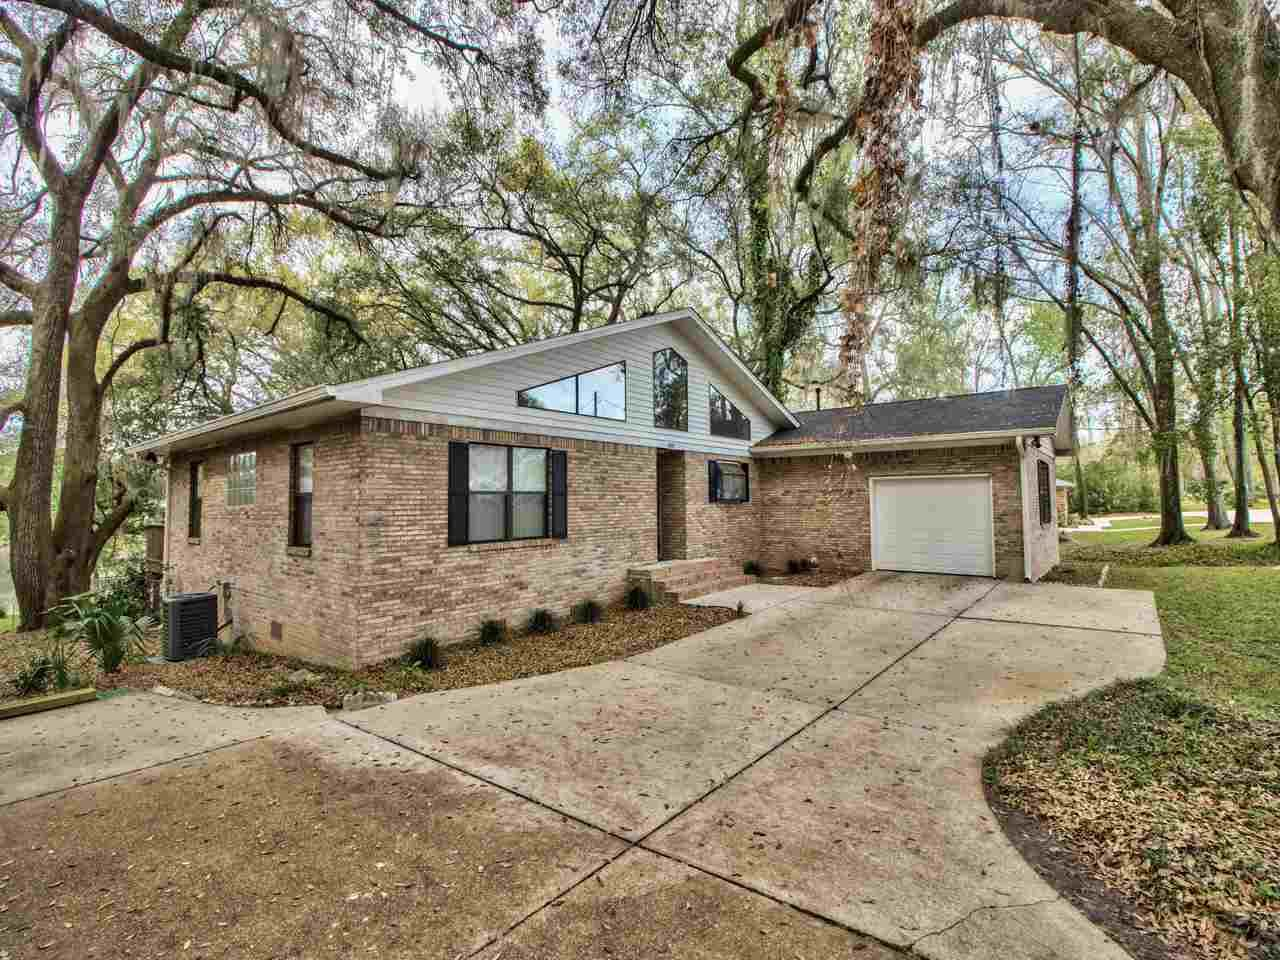 Photo of 3152 Lookout Trail, TALLAHASSEE, FL 32309 (MLS # 316813)